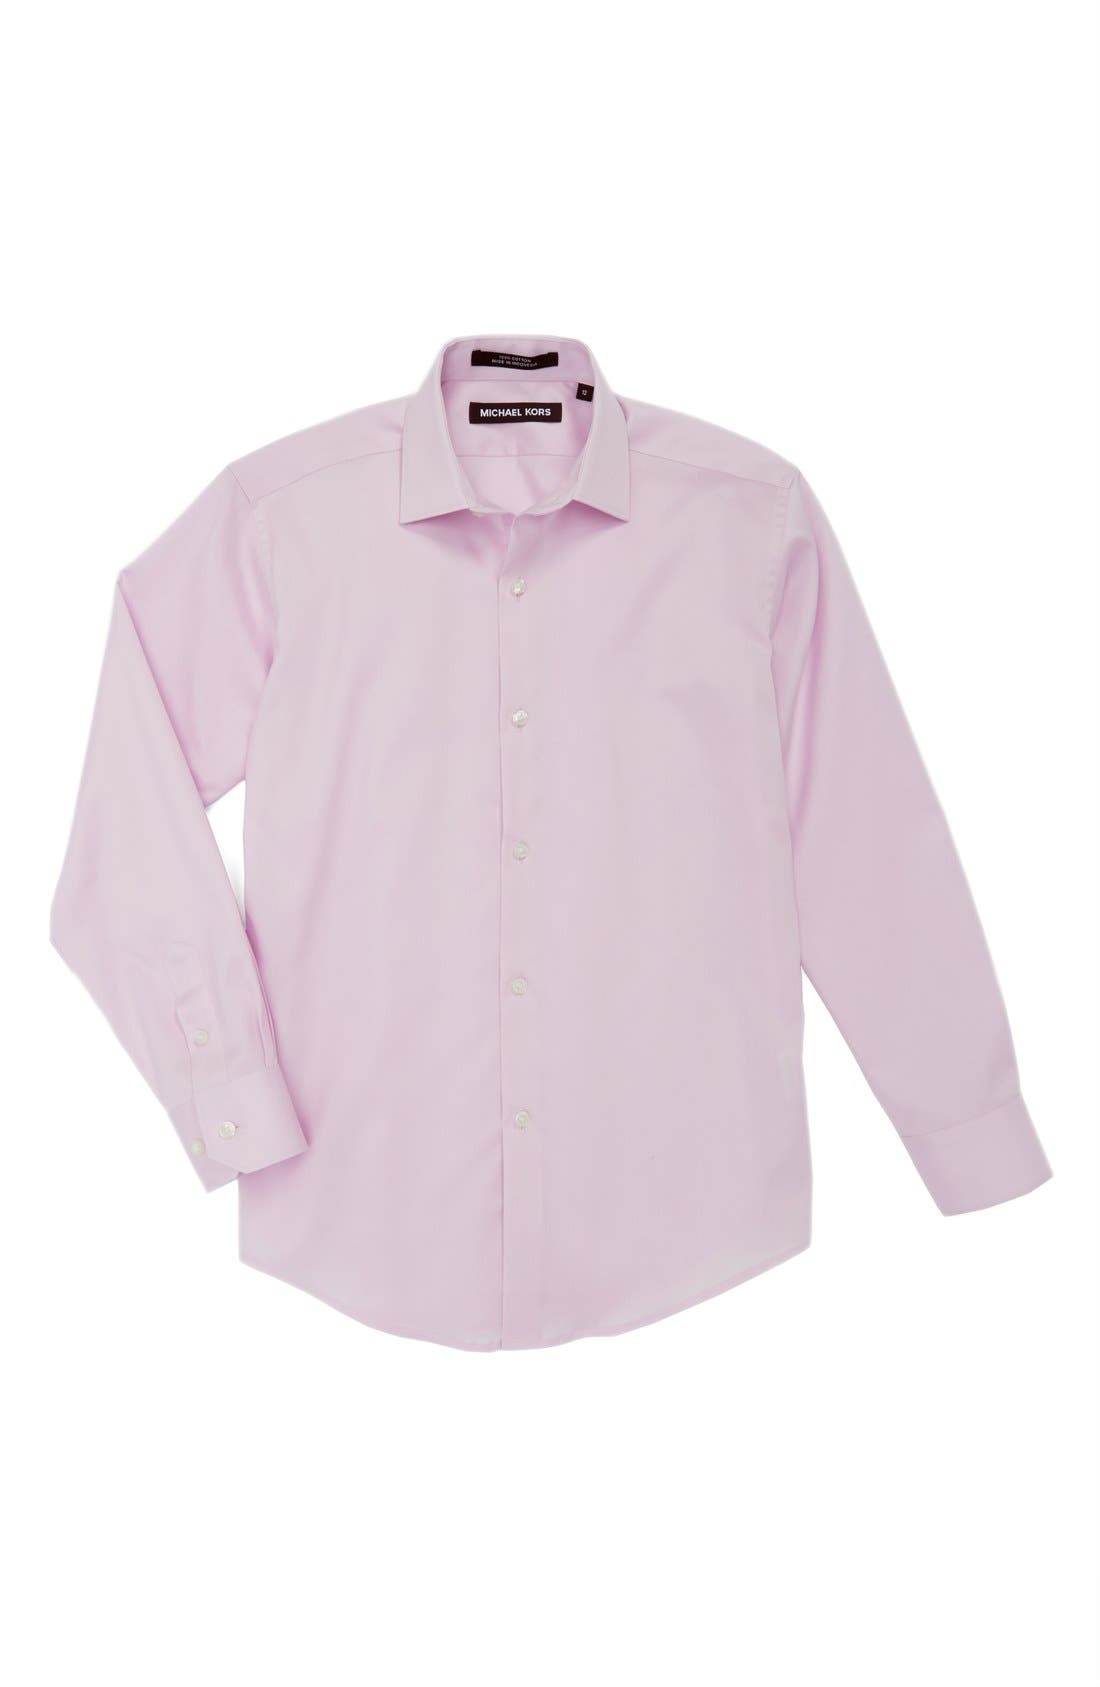 Alternate Image 1 Selected - Michael Kors Woven Cotton Dress Shirt (Big Boys)